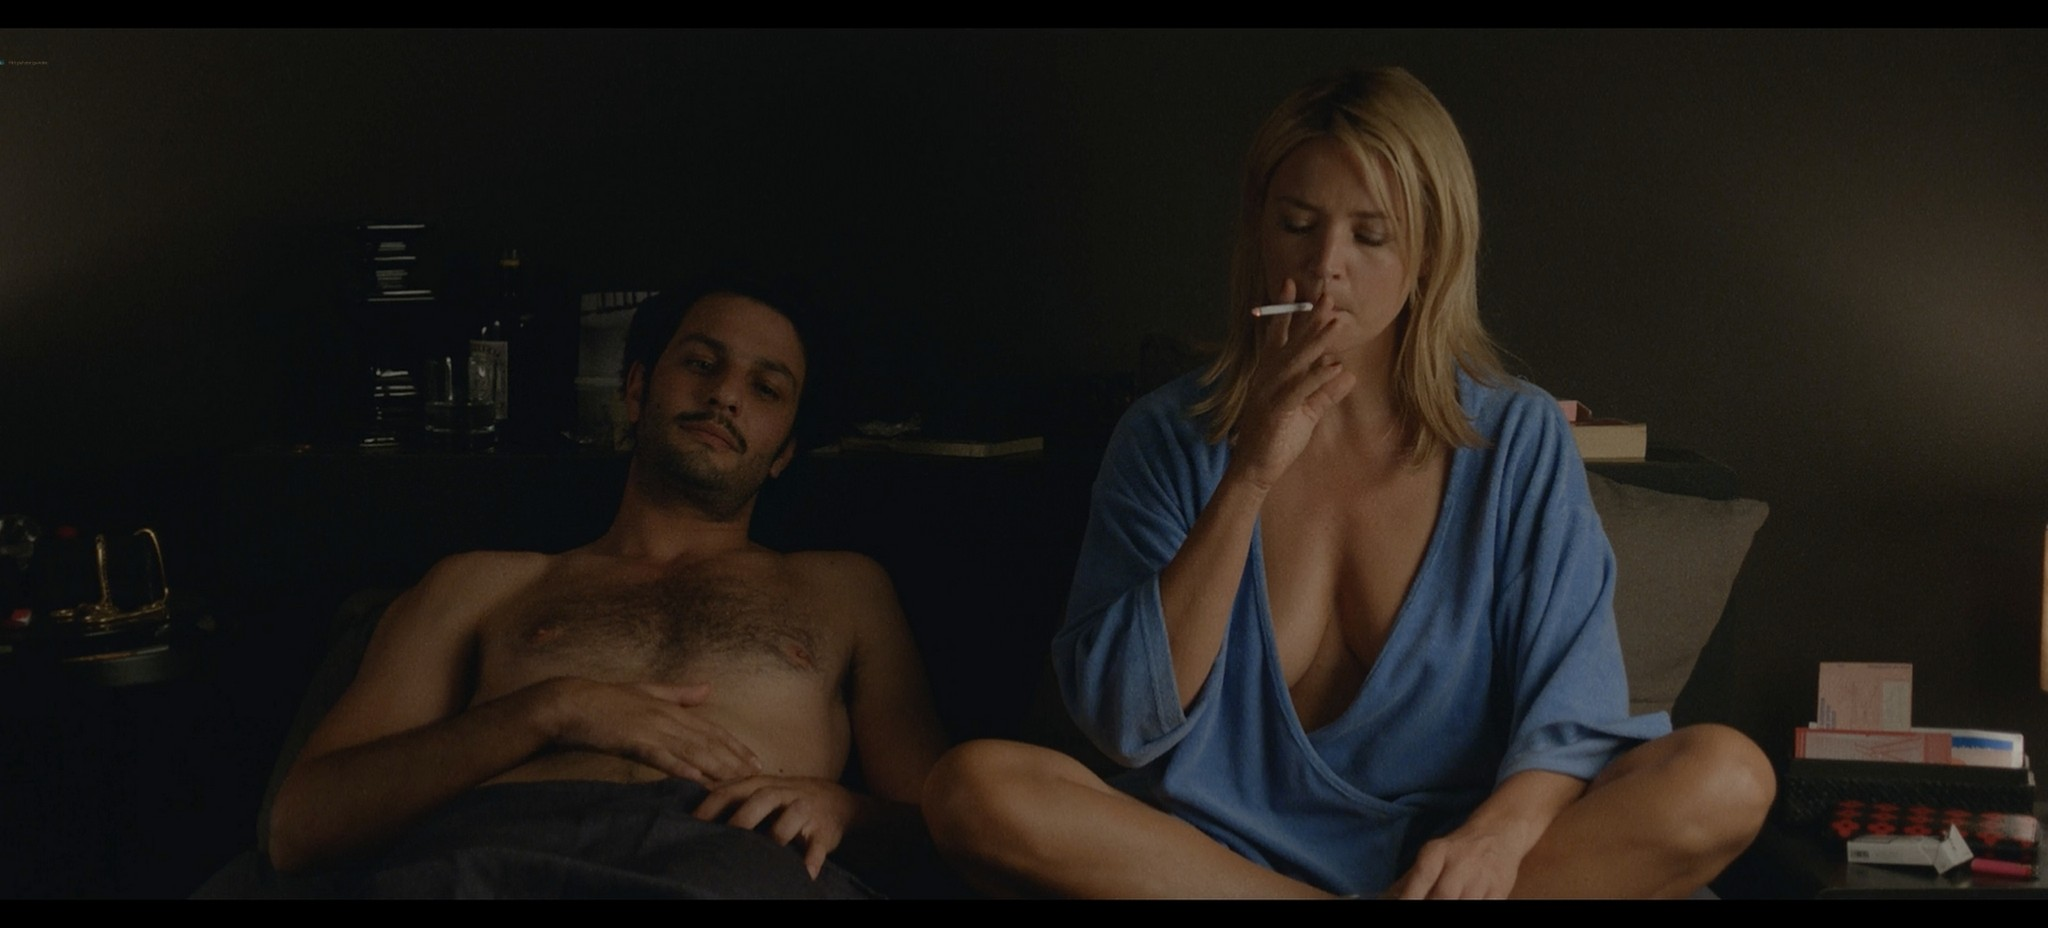 Virginie Efira nude topless and sex Victoria FR 2016 HD 1080p BluRay REMUX 3